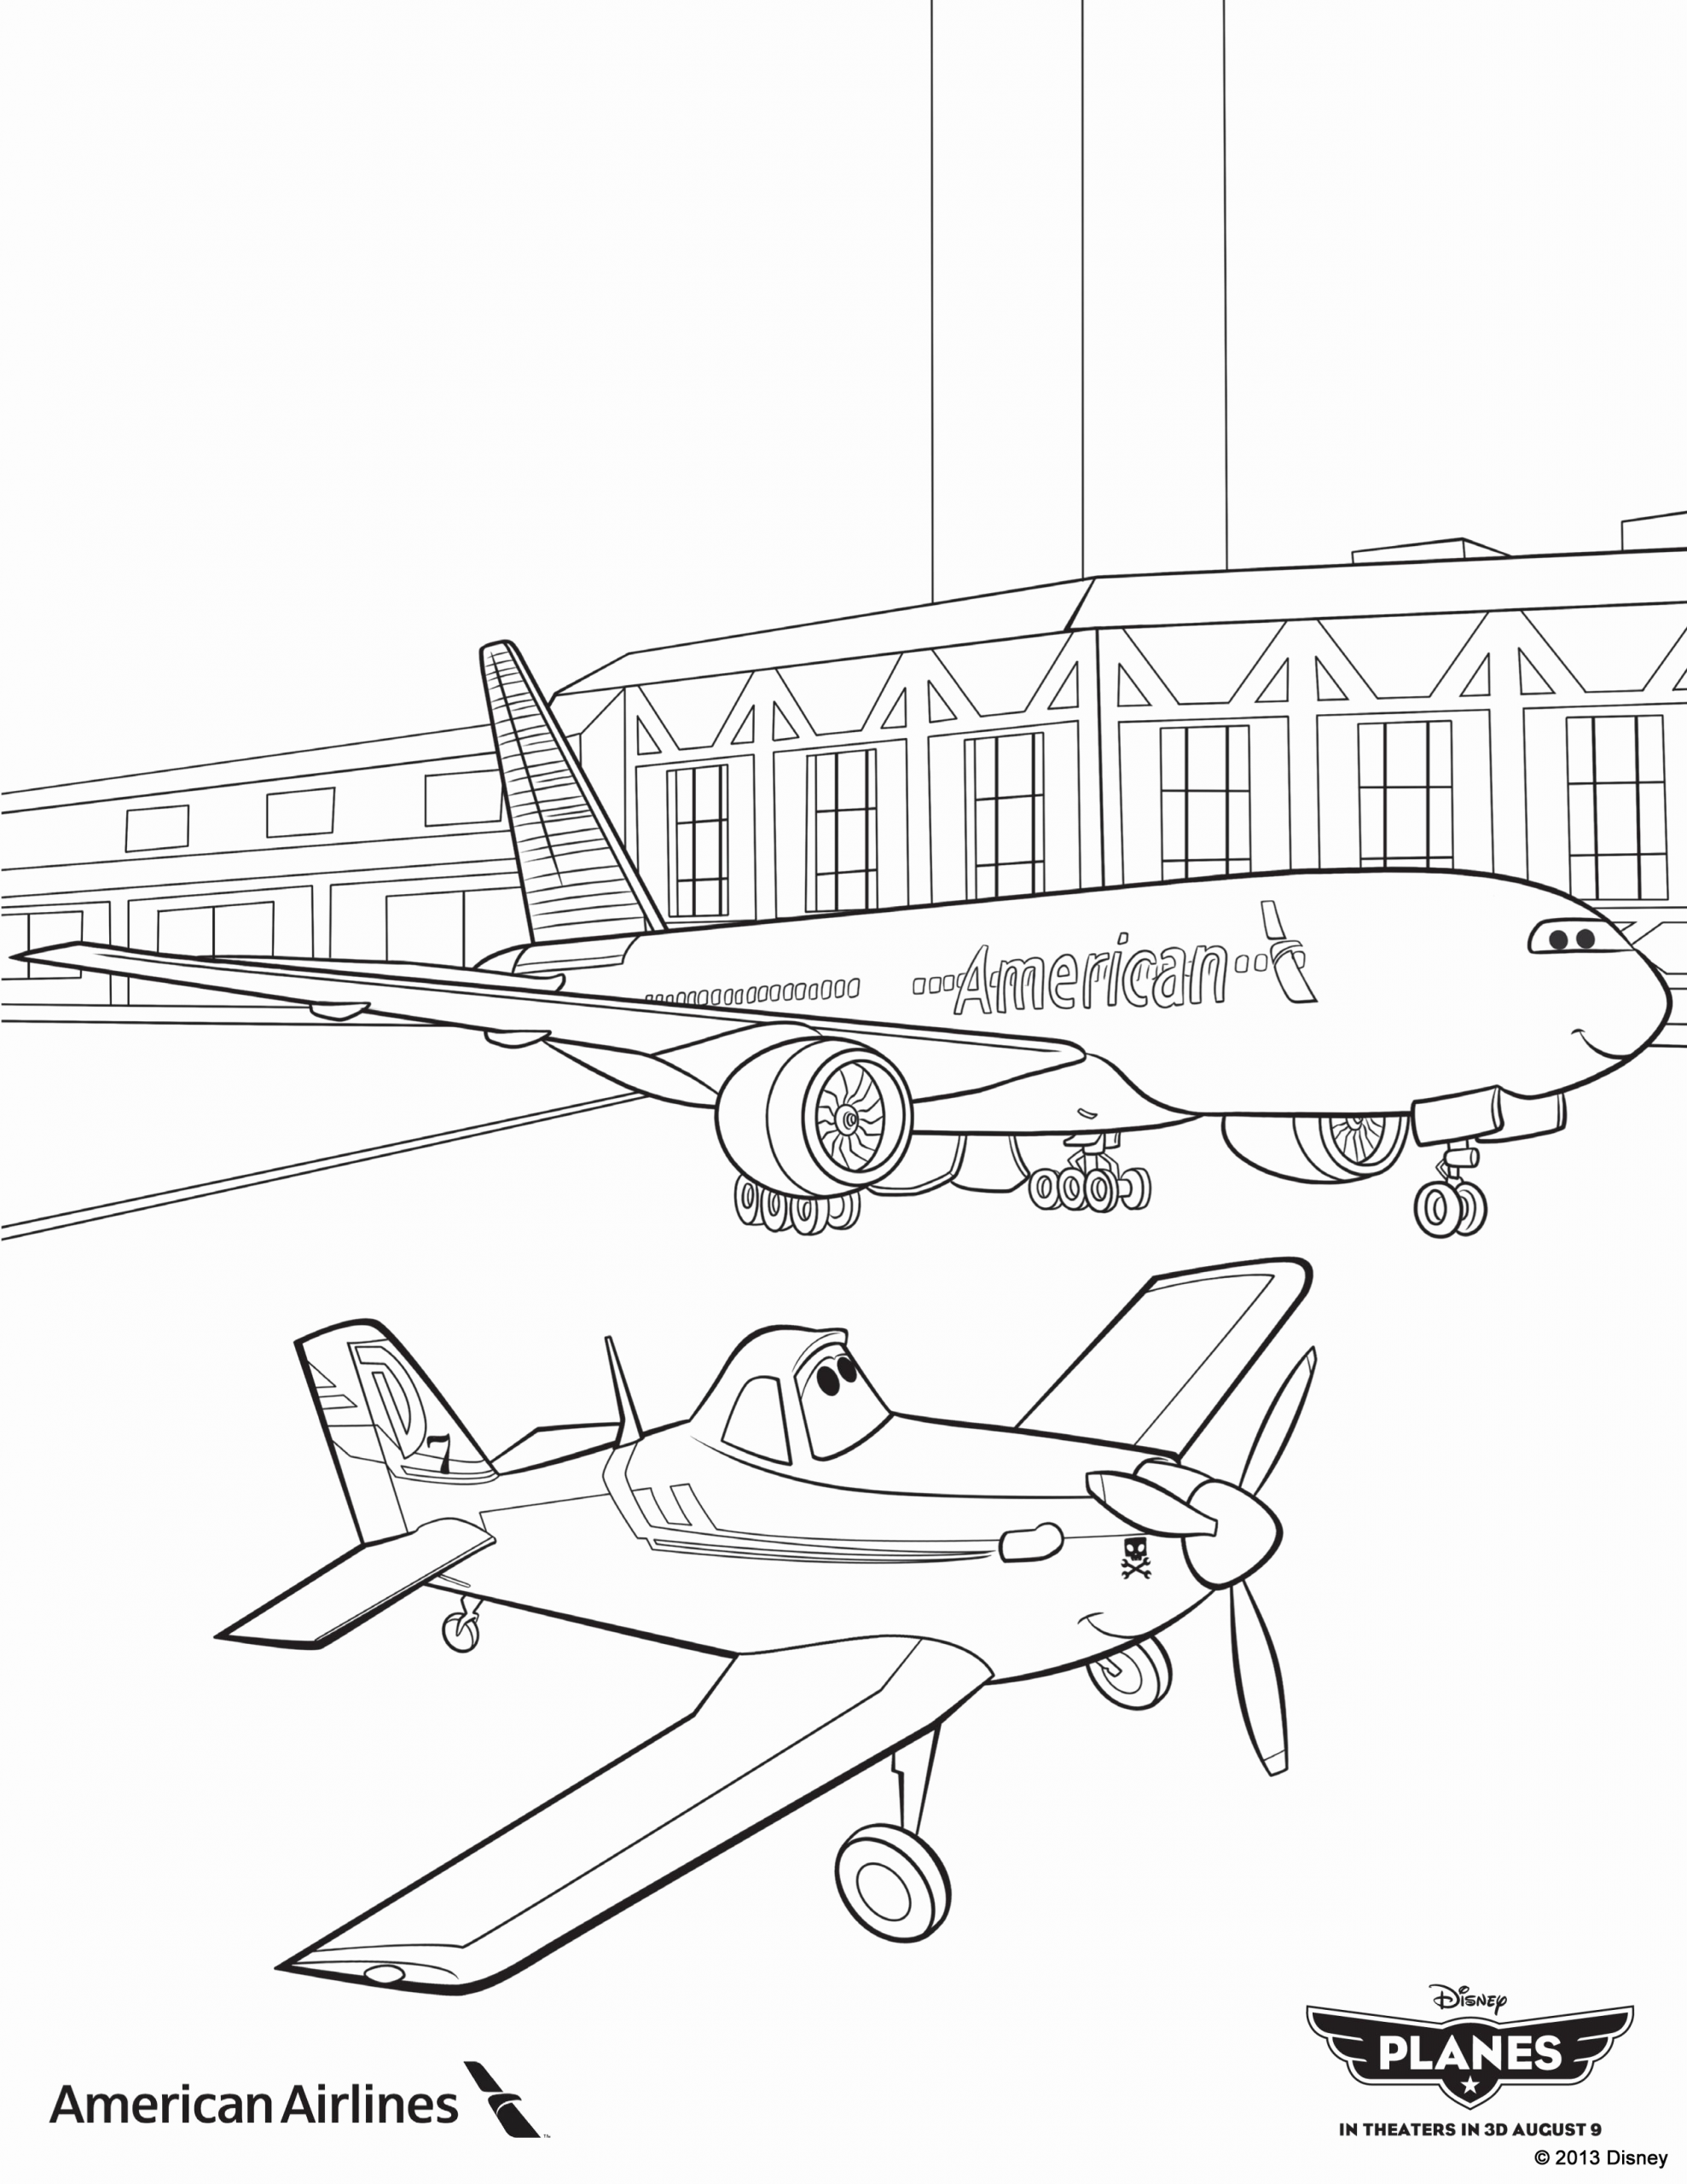 Lego Airplanes Coloring Pages For Kids In 2020 Airplane Coloring Pages Disney Coloring Pages Disney Planes